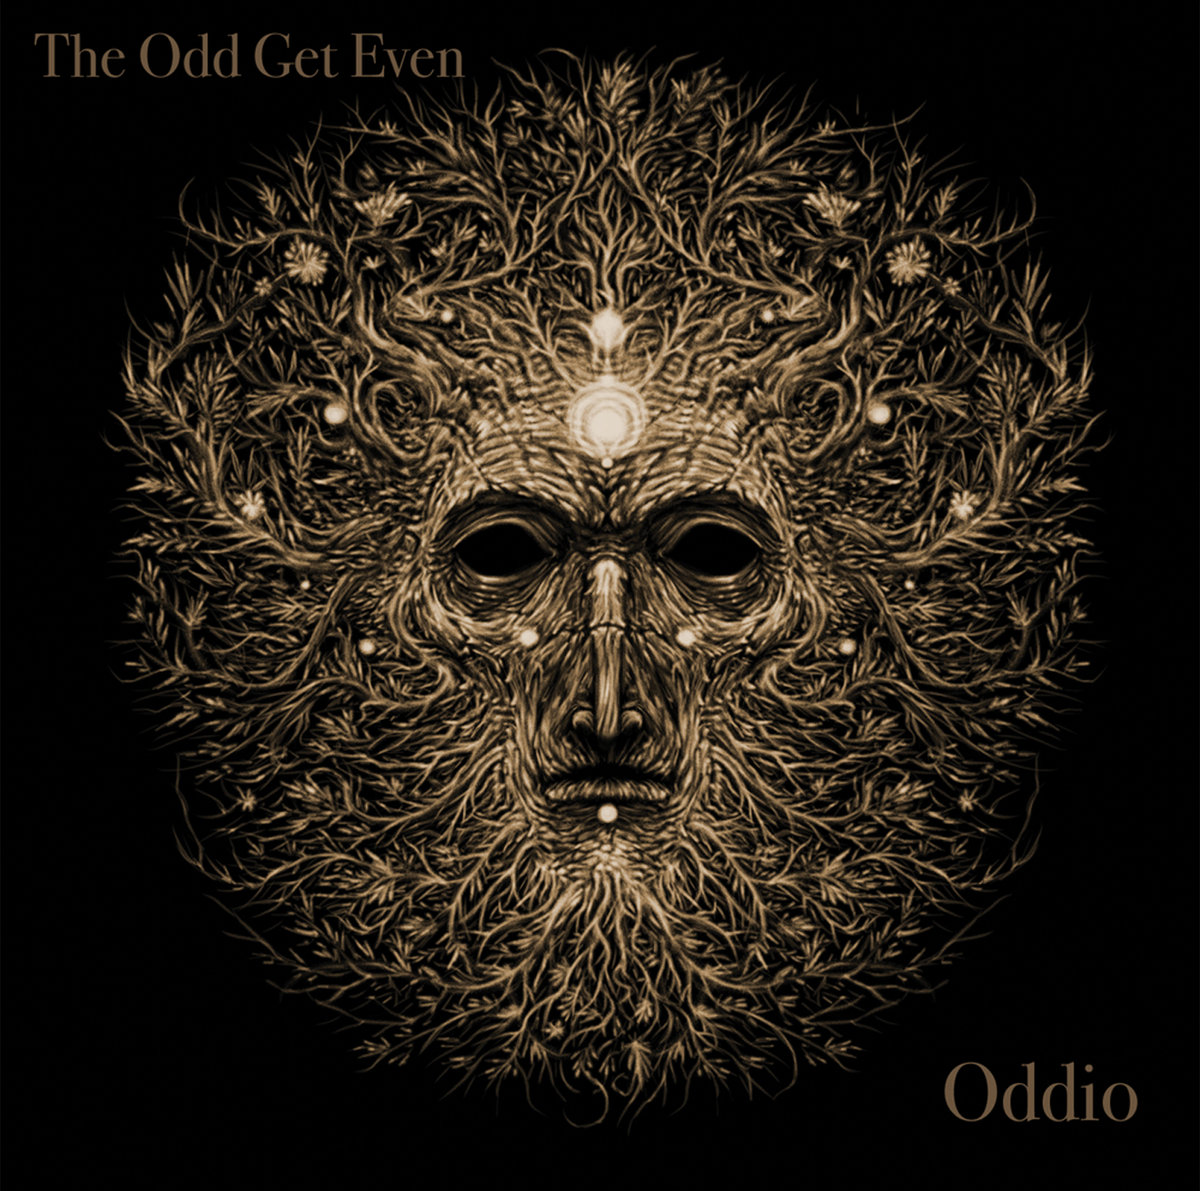 The Odd Get Even